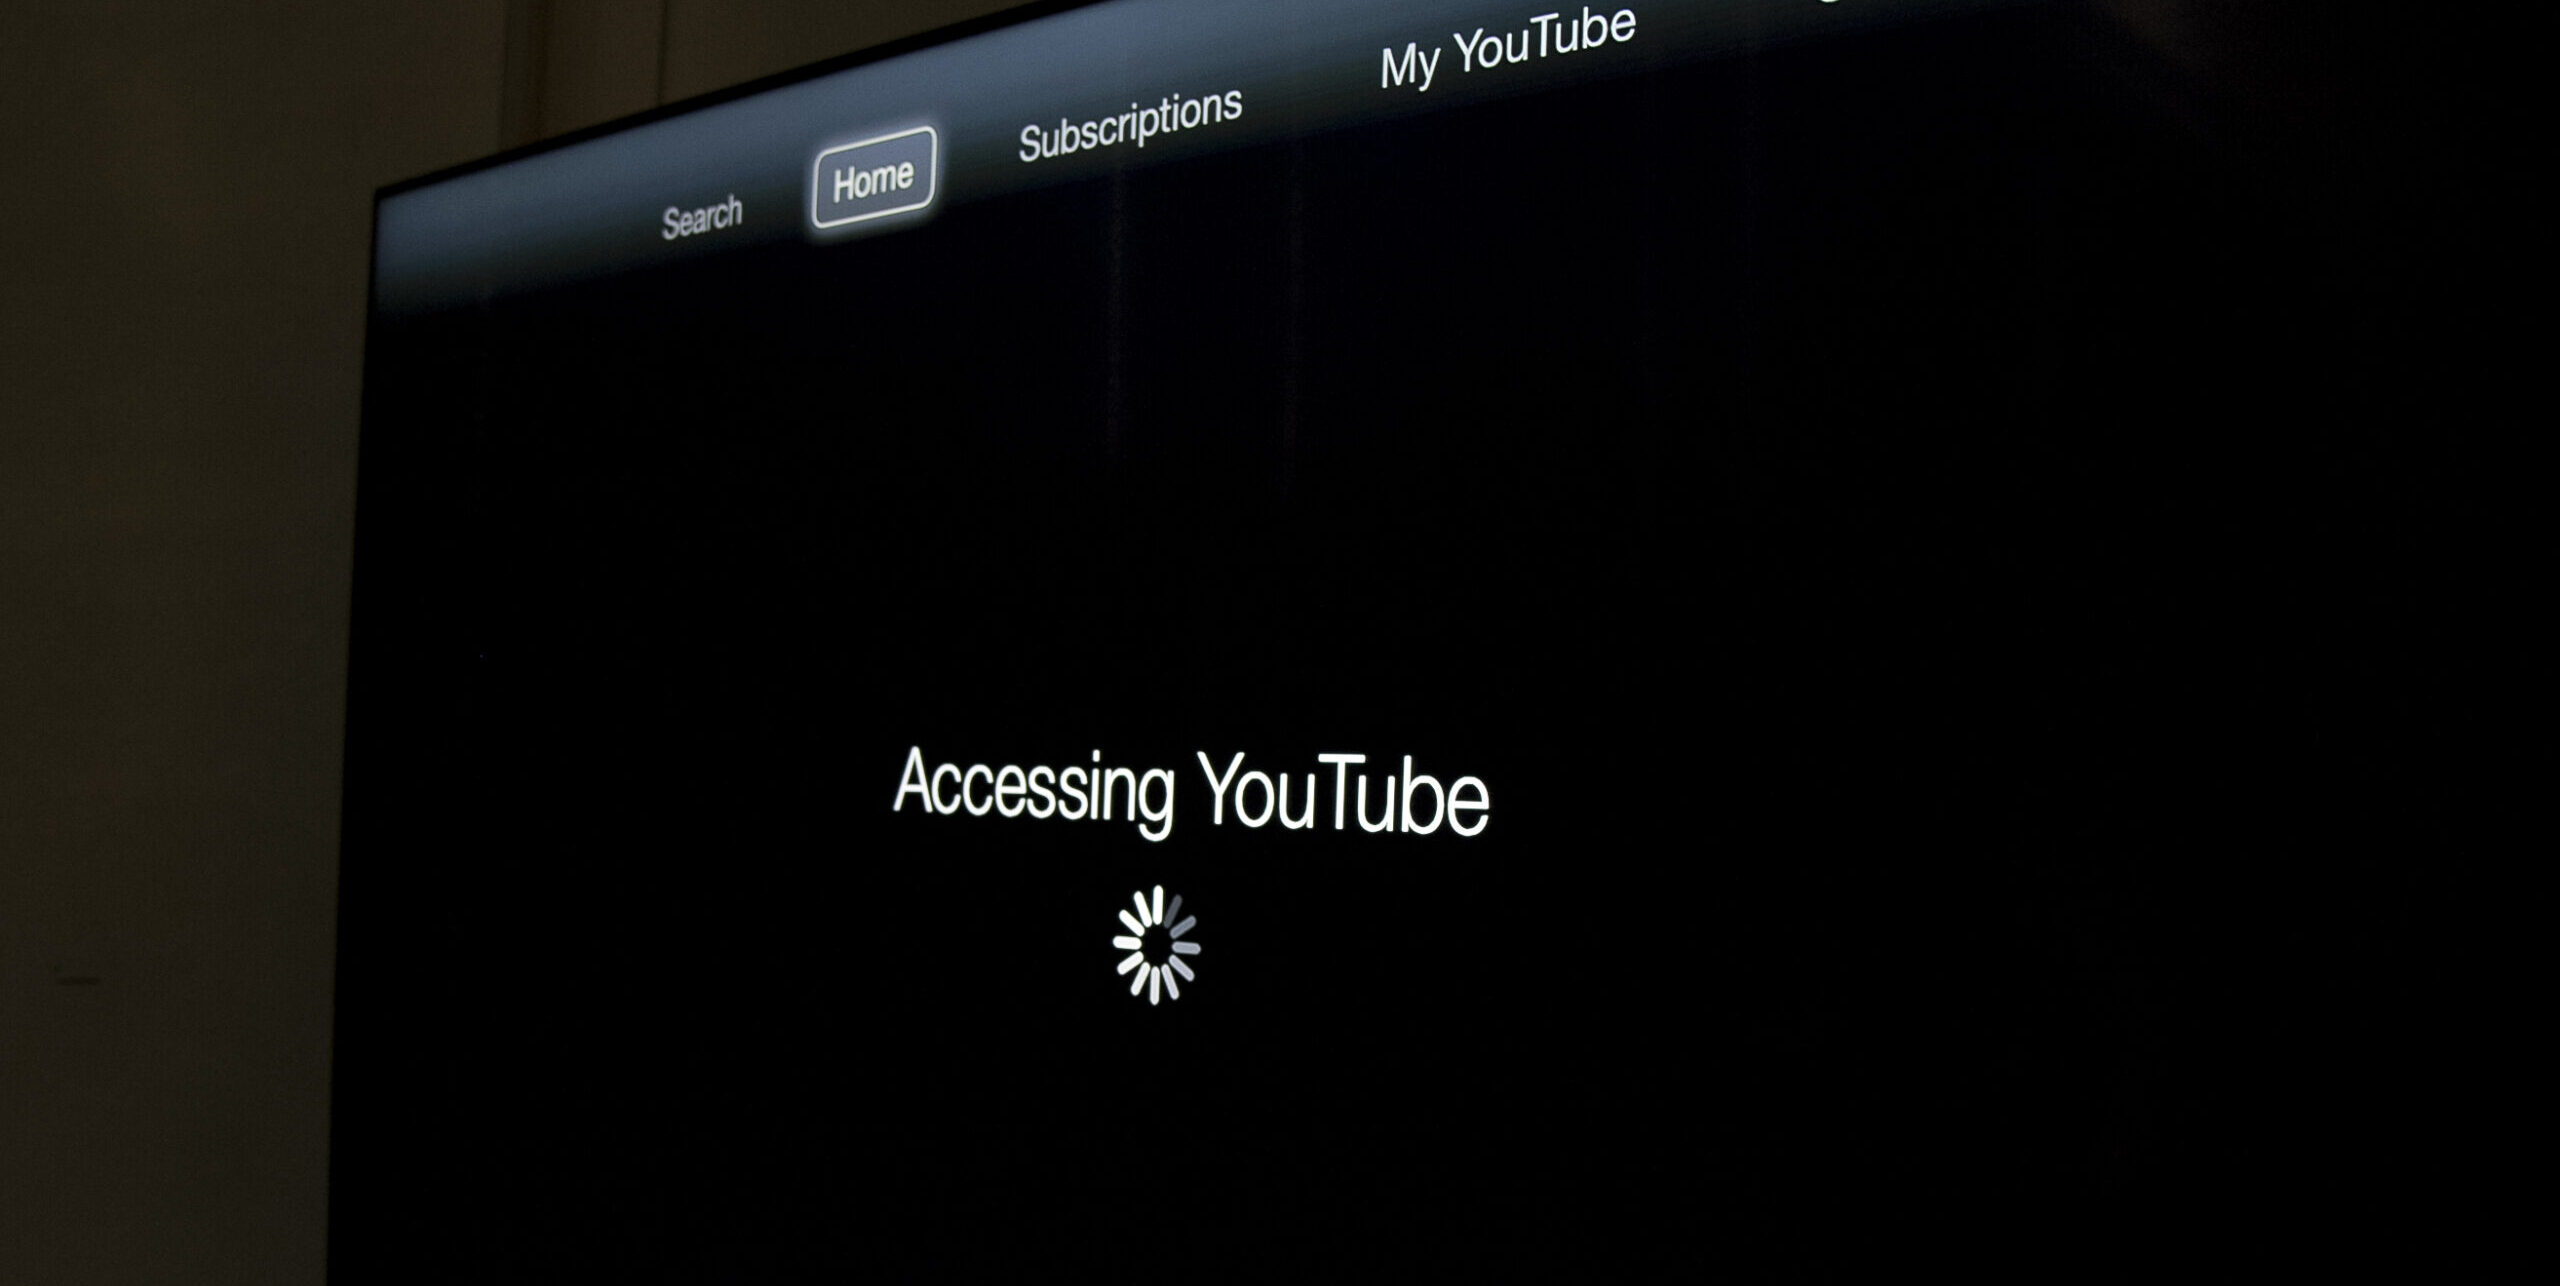 Accessing YouTube Screen Capture